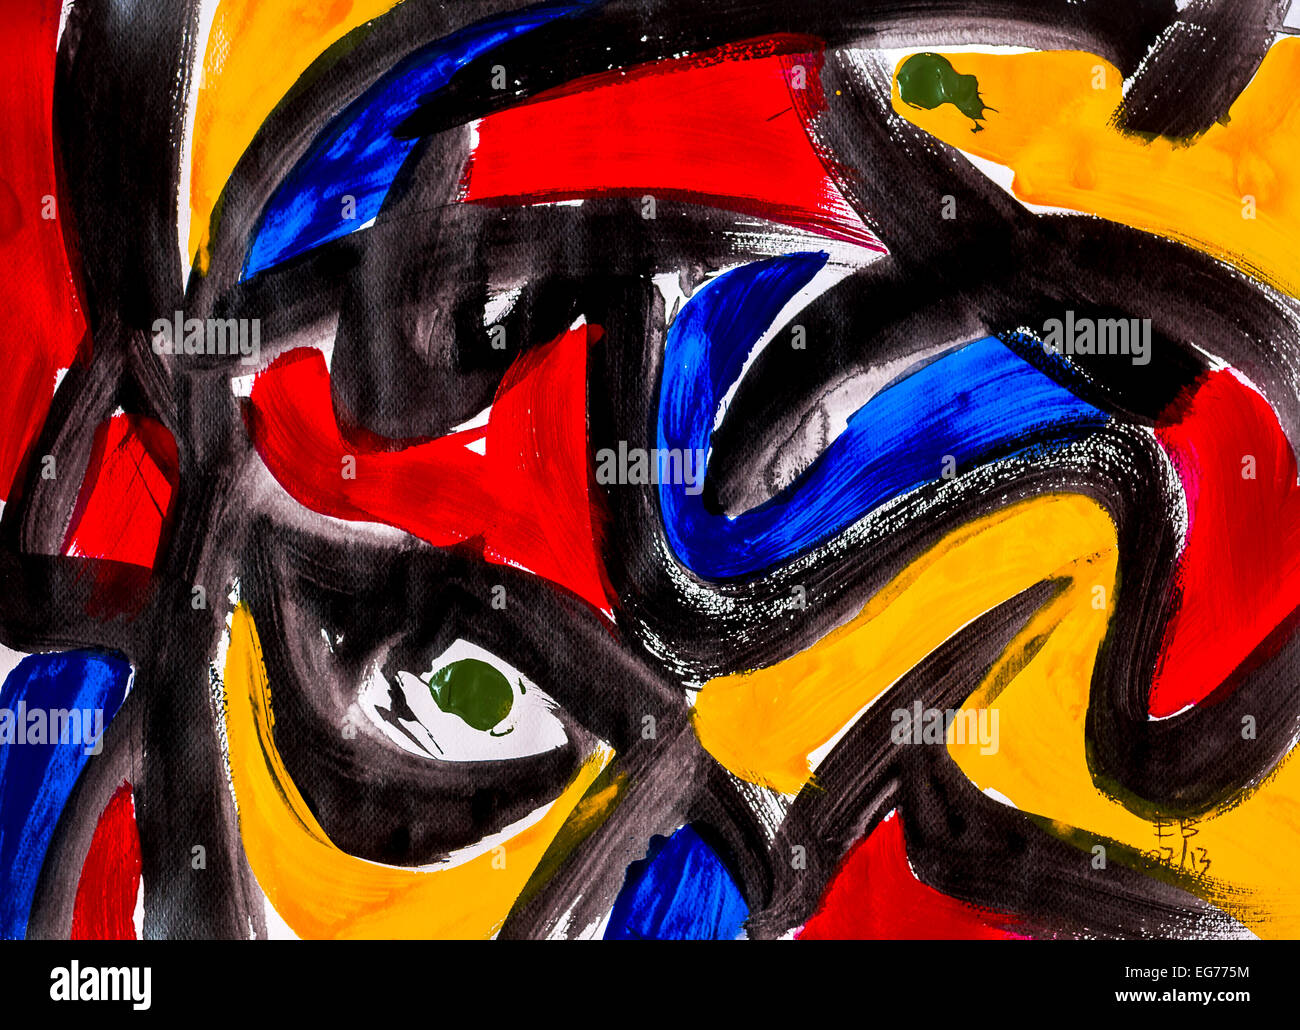 """Modern abstract acrylic painting """"Stained glass"""" by Ed Buziak - France. - Stock Image"""